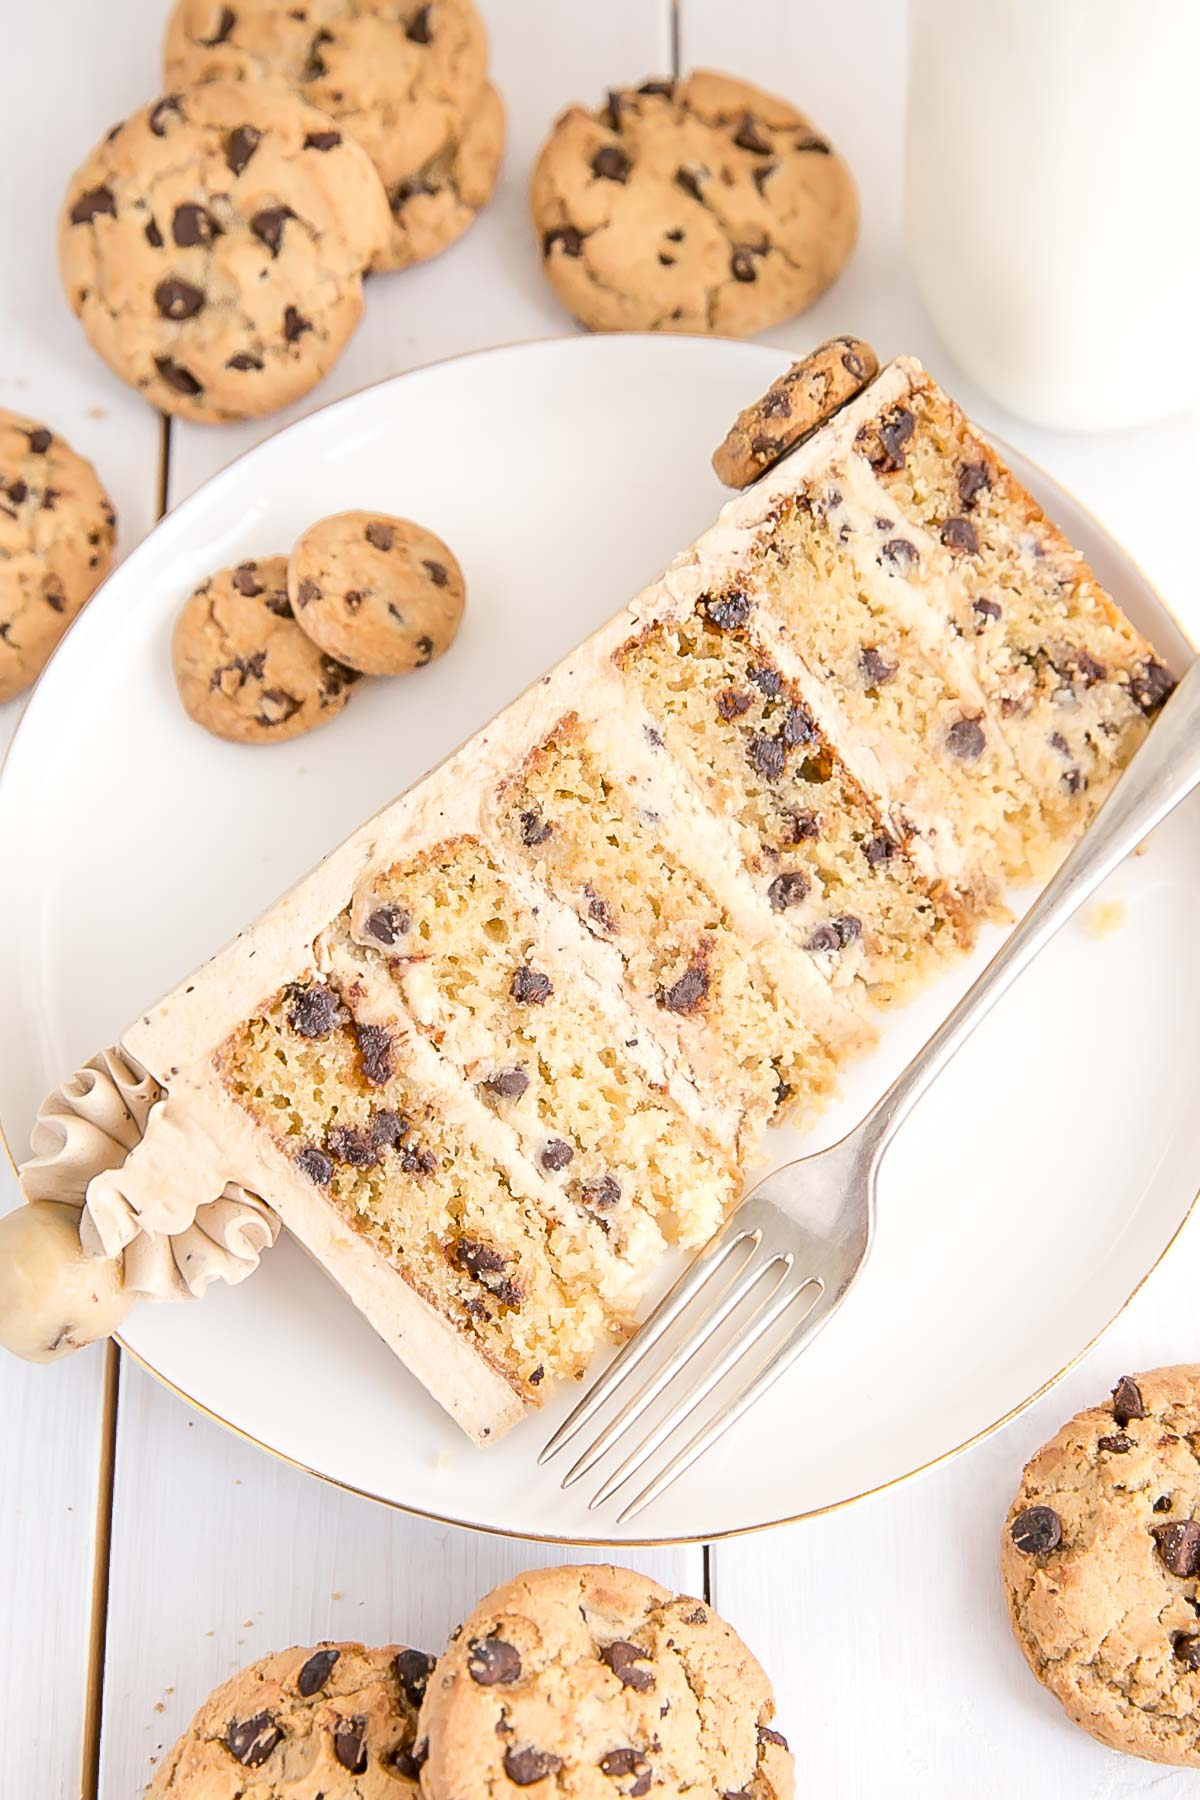 Slice of Chocolate Chip Cookie Cake with 6 layers.